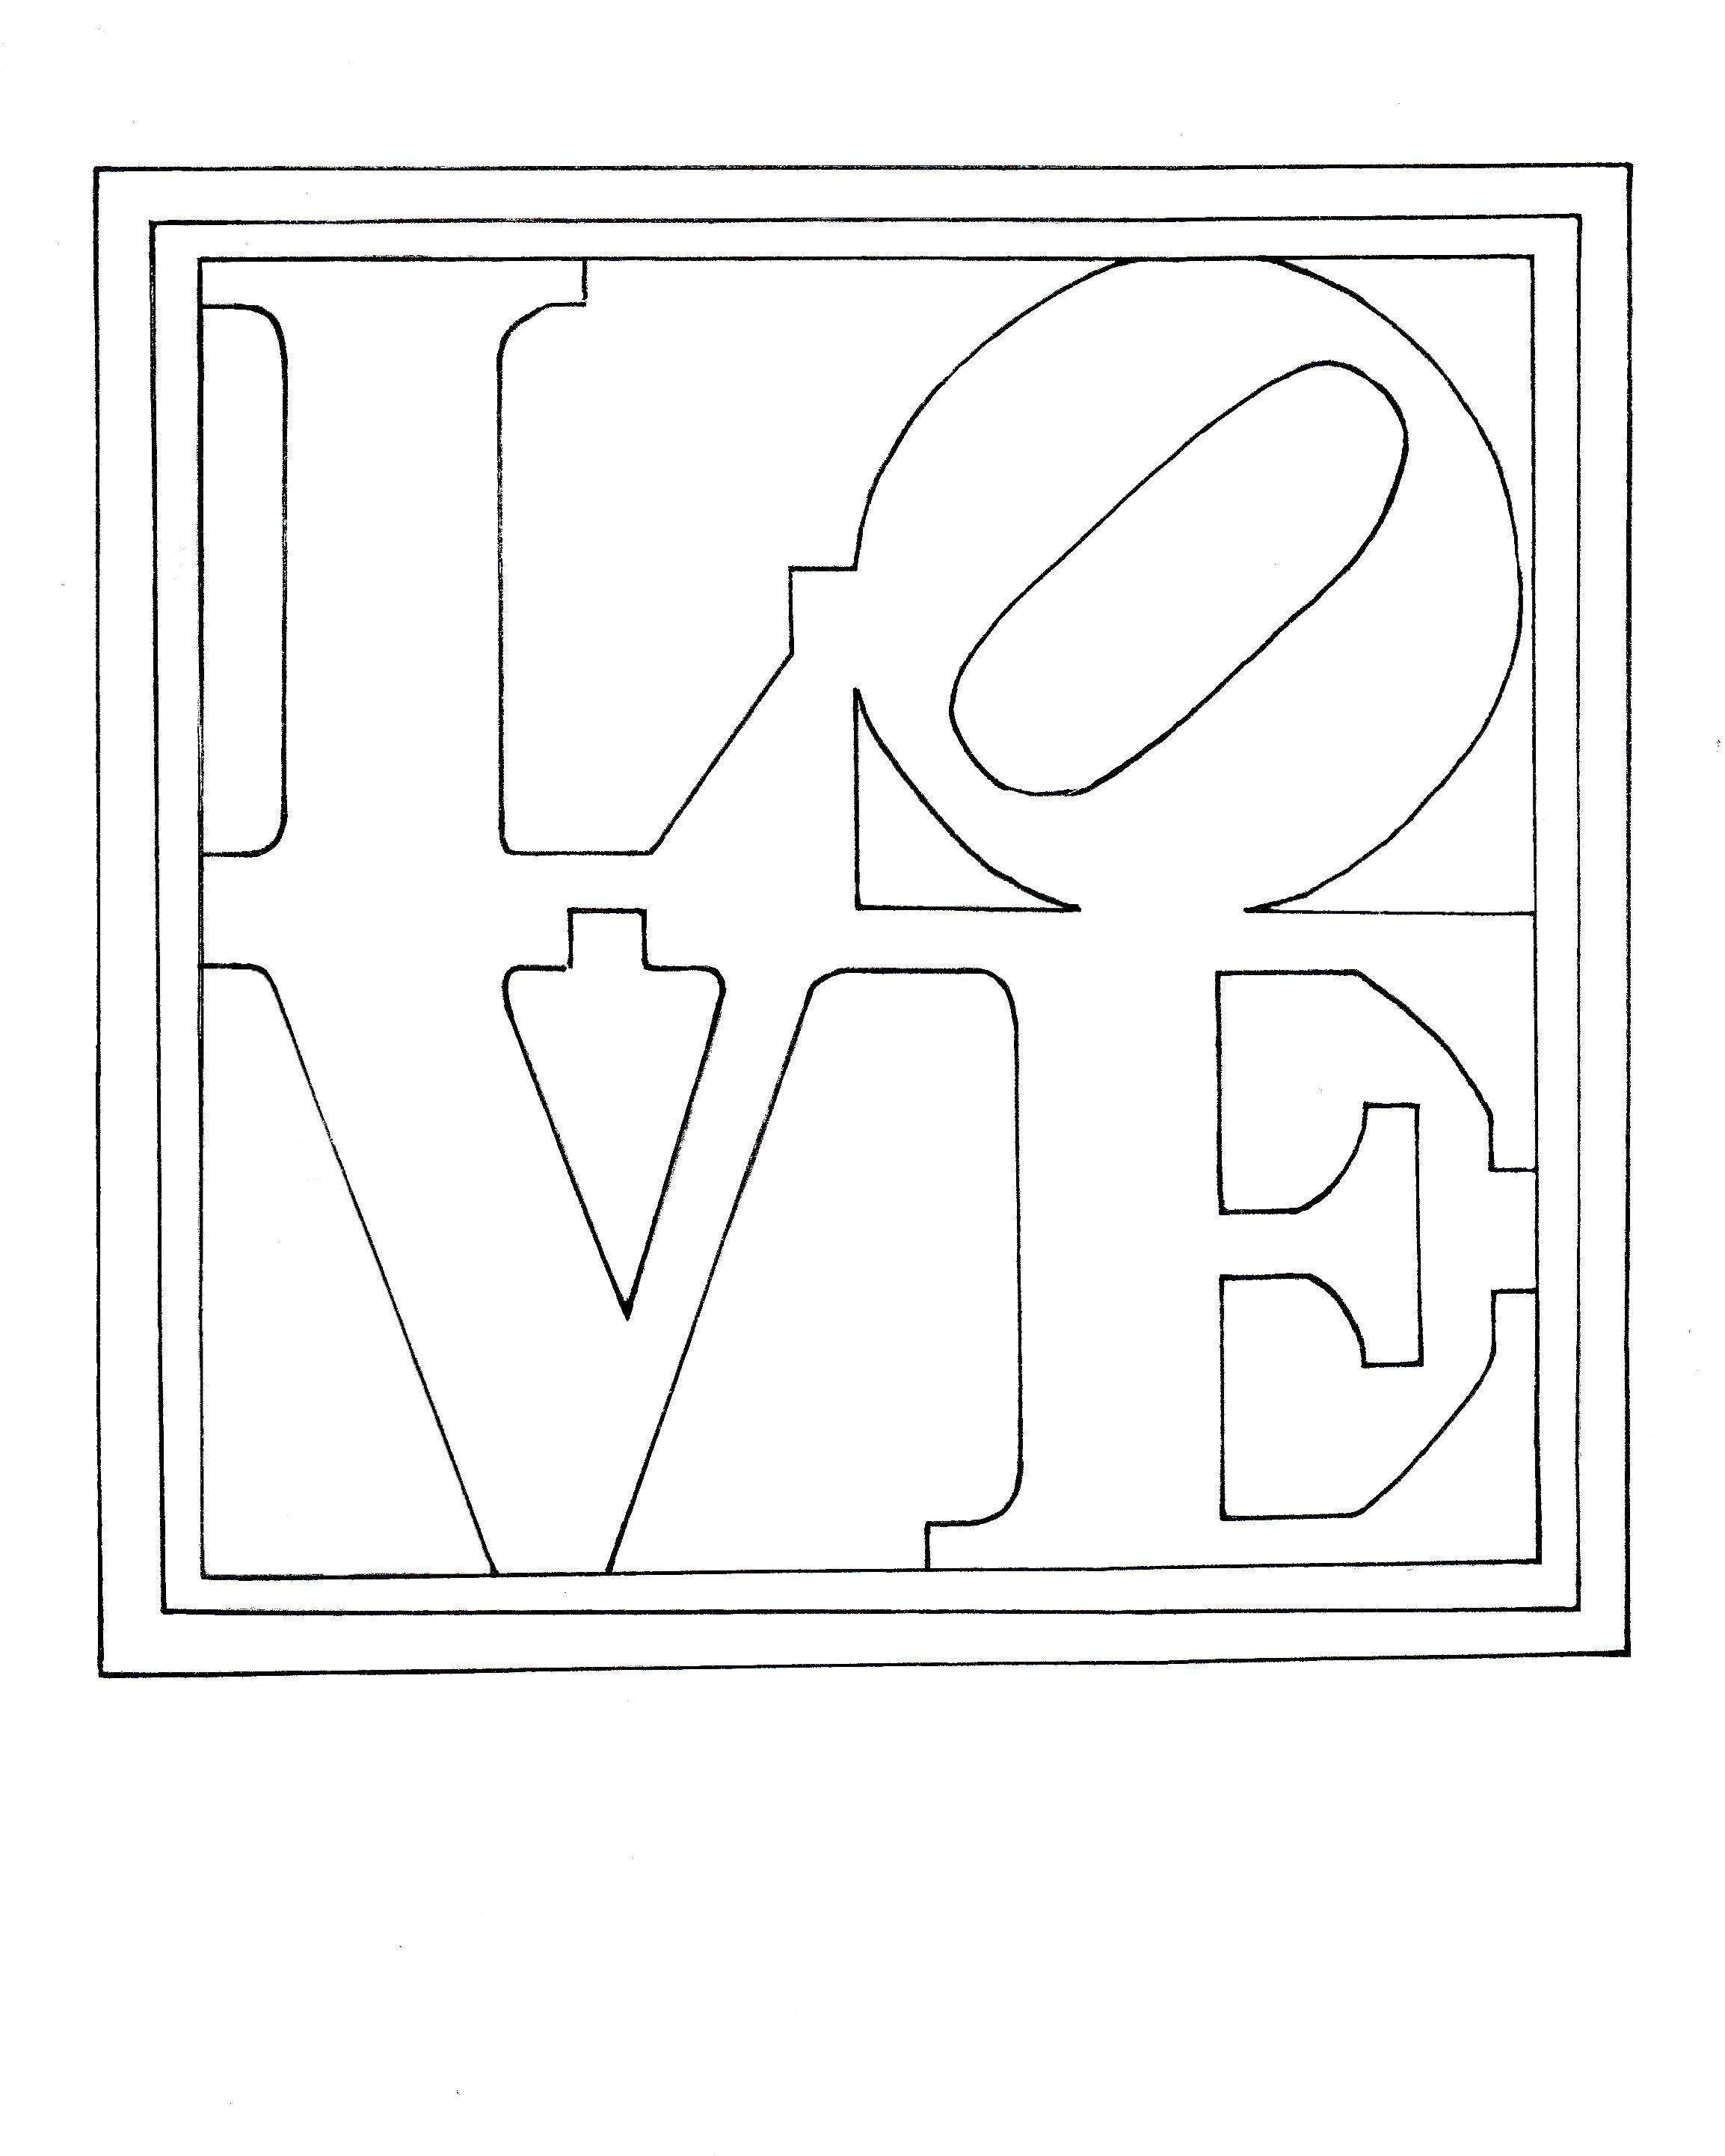 Colouring Page Of Robert Indiana S Famous Painting Sculpture